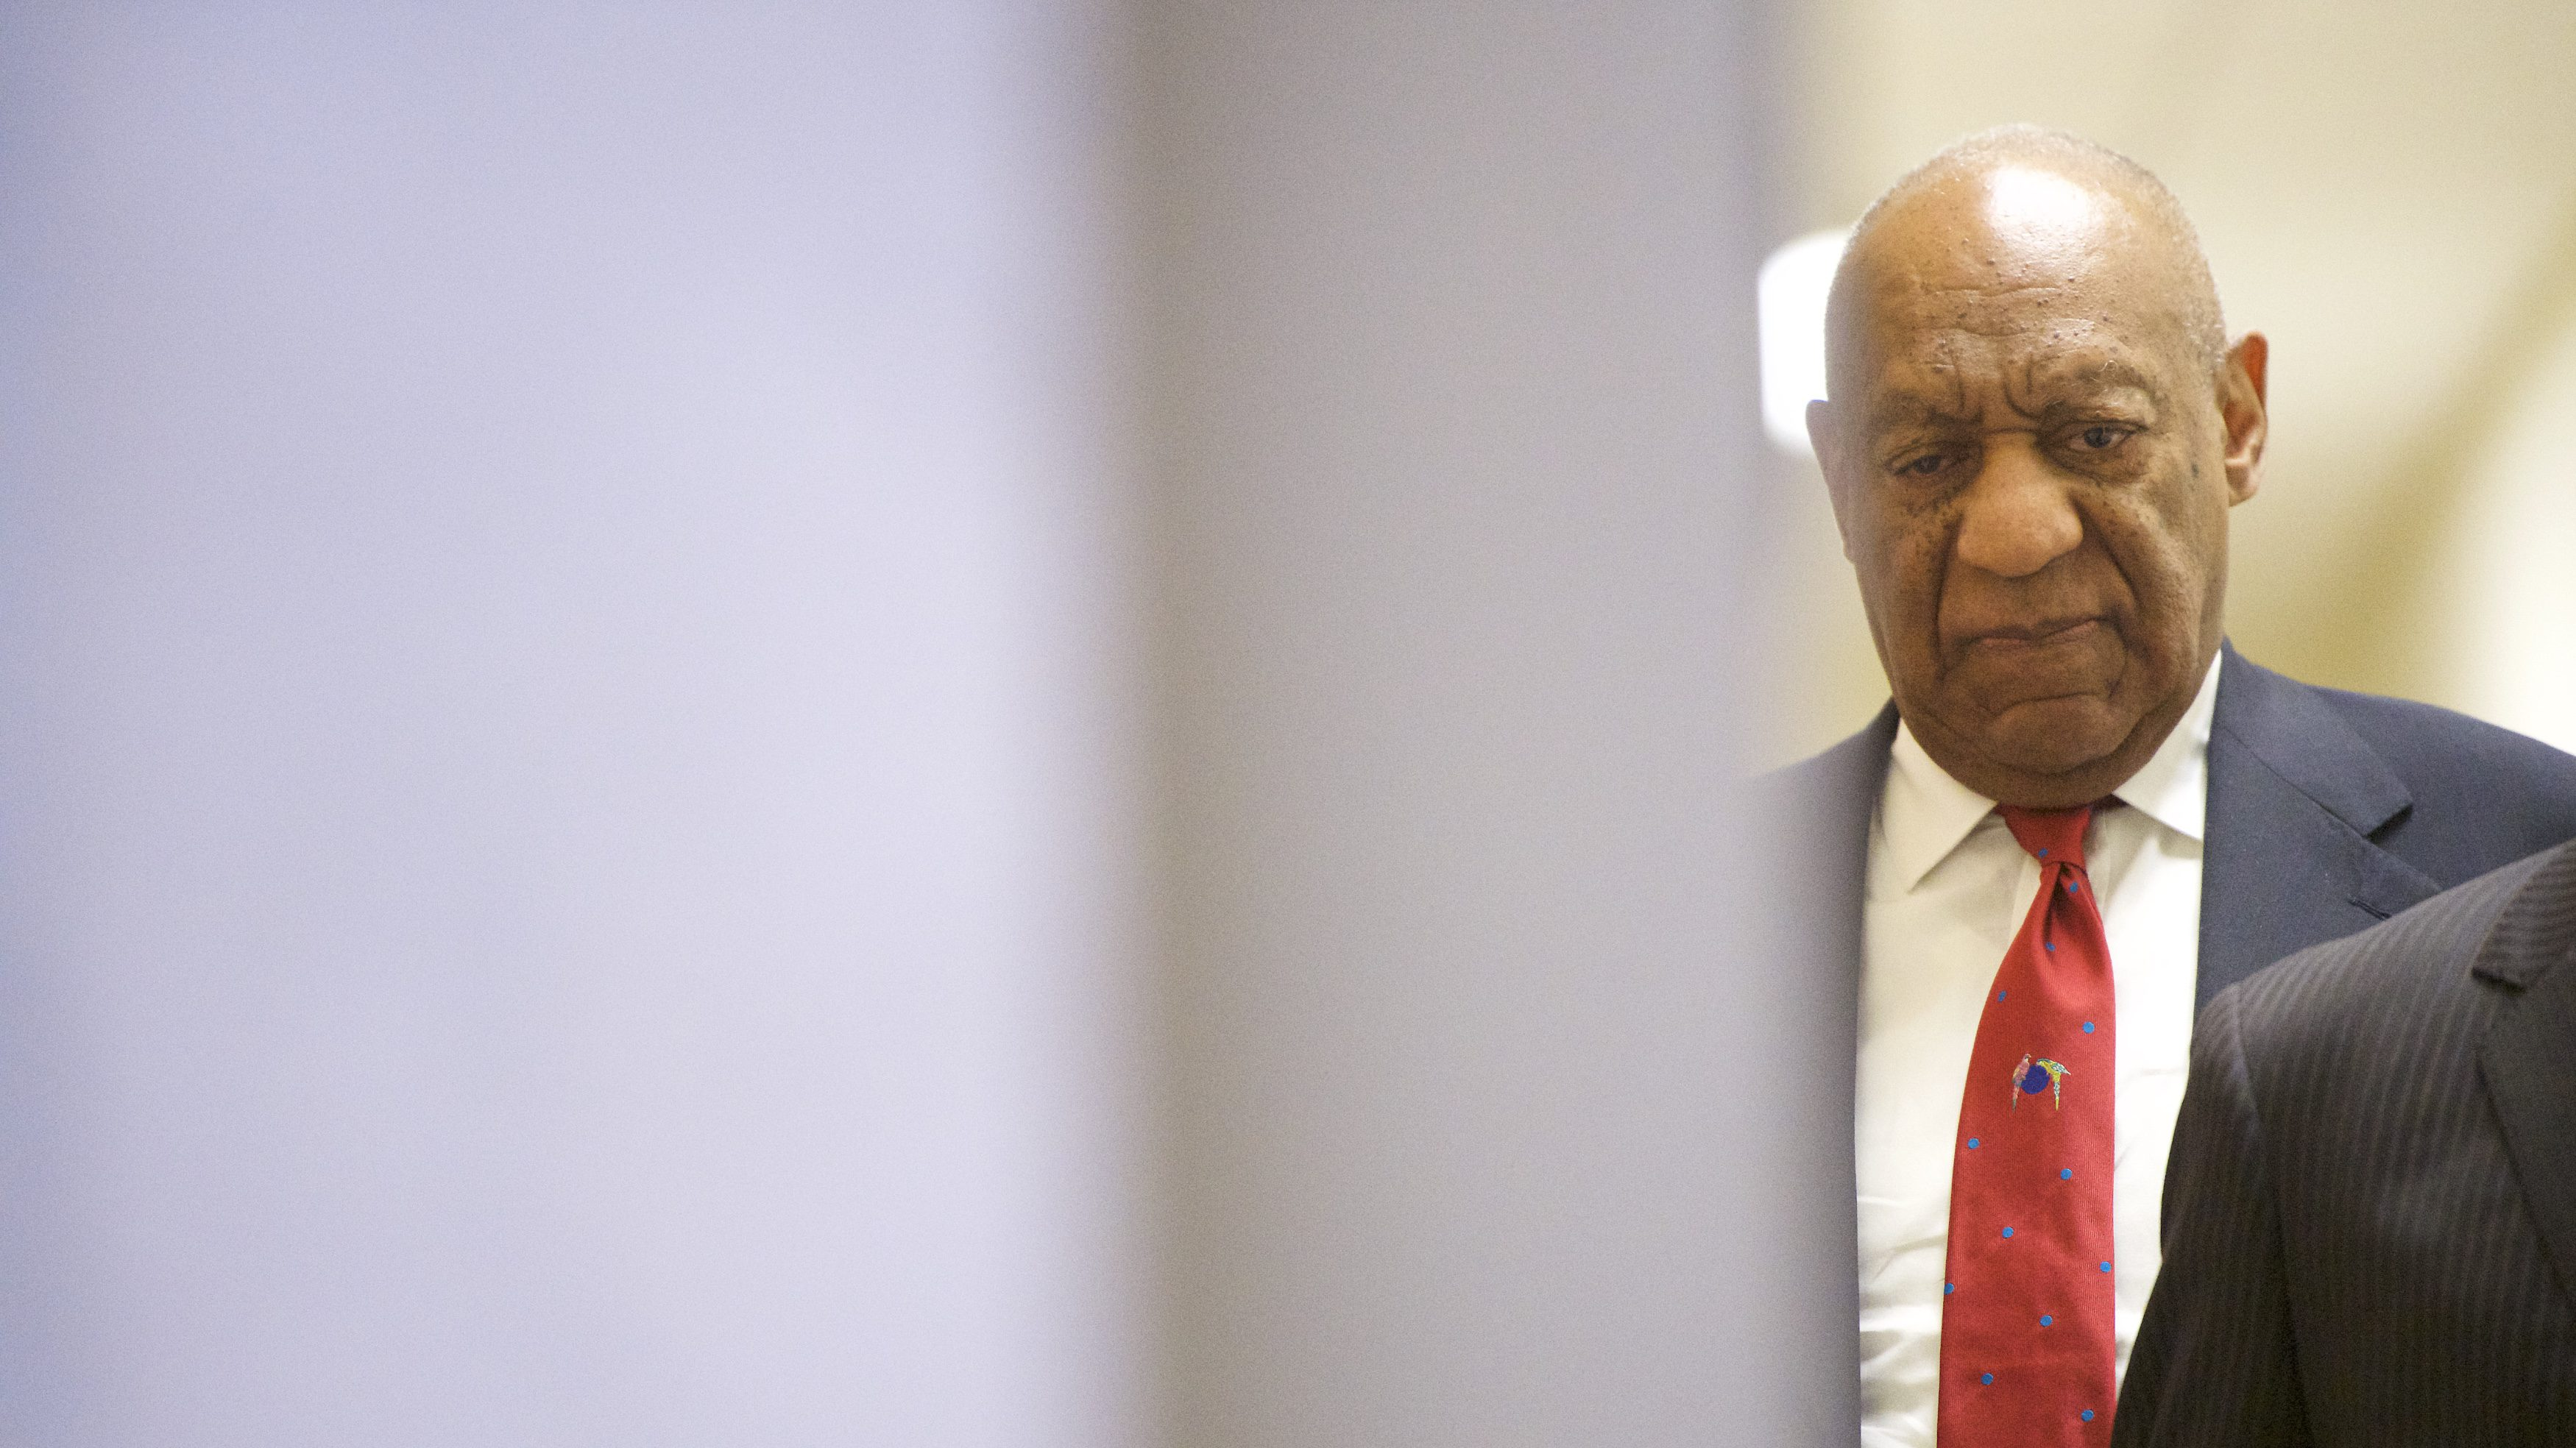 Files lacroix for bankruptcy, Johnson beverley says drugged bill cosby